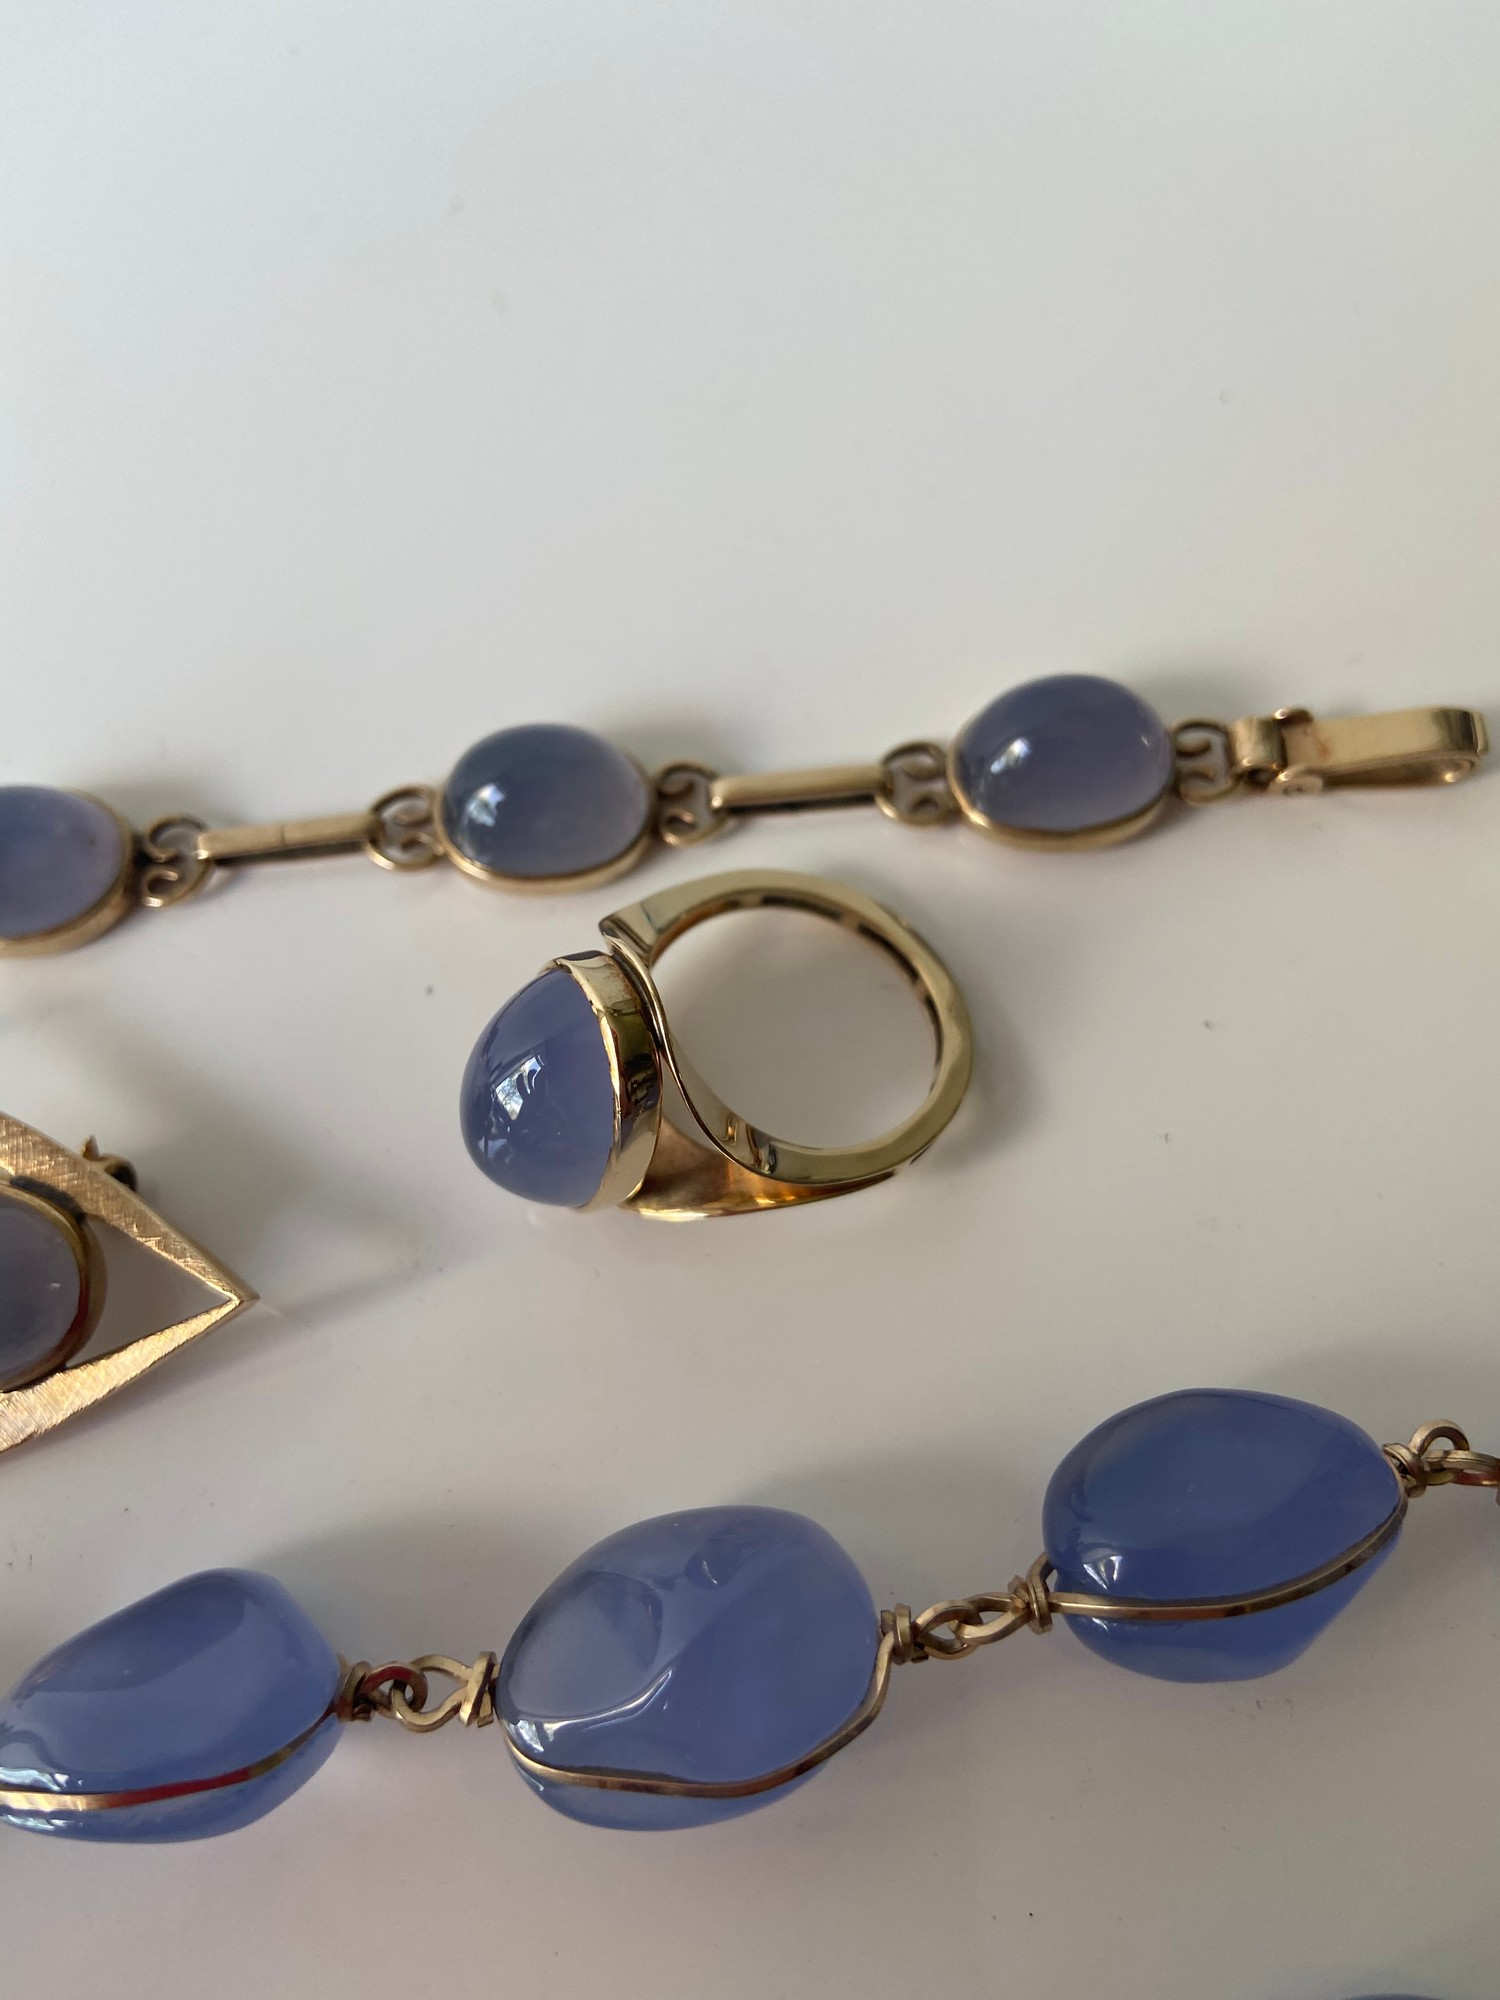 A FIVE PIECE NECKLACE, RING, BROOCH, BRACELET AND EARRING SET. ALL BEAUTIFULLY SET WITH CHALCEDONY - Image 4 of 13